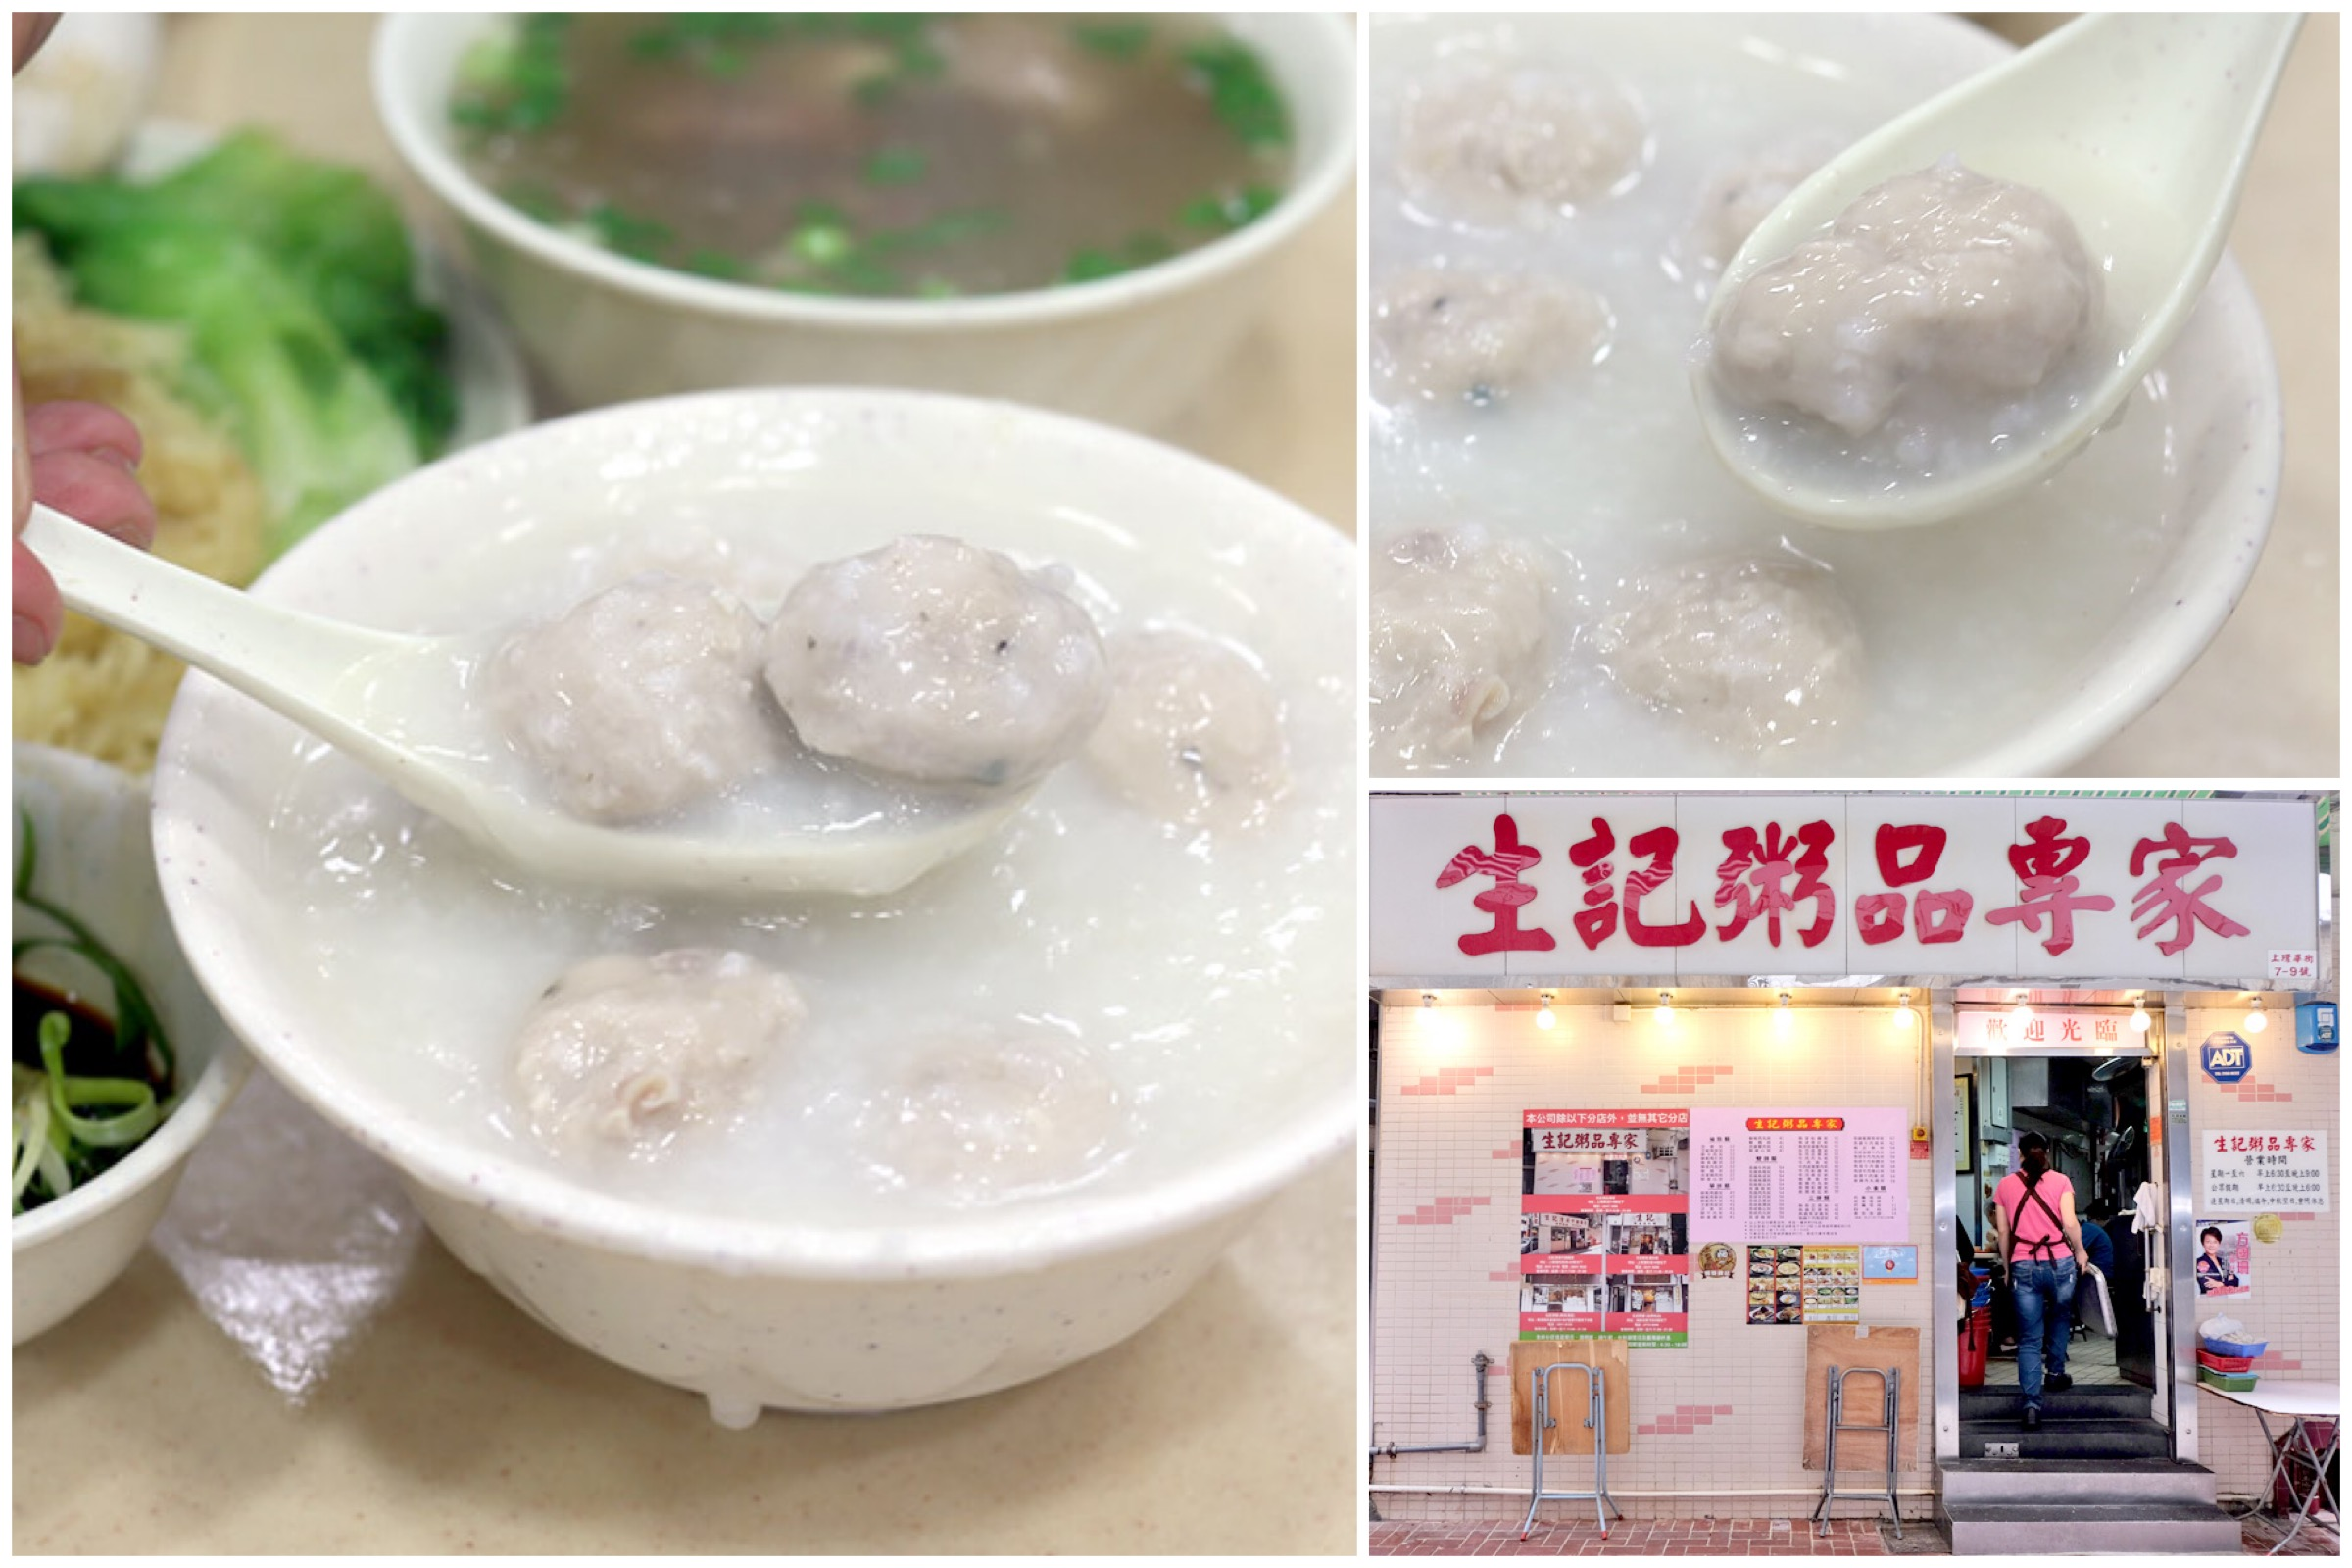 Sang Kee Congee 生記粥品專家 - Hot And Delicious Congee Since The 70s, At Sheung Wan Hong Kong